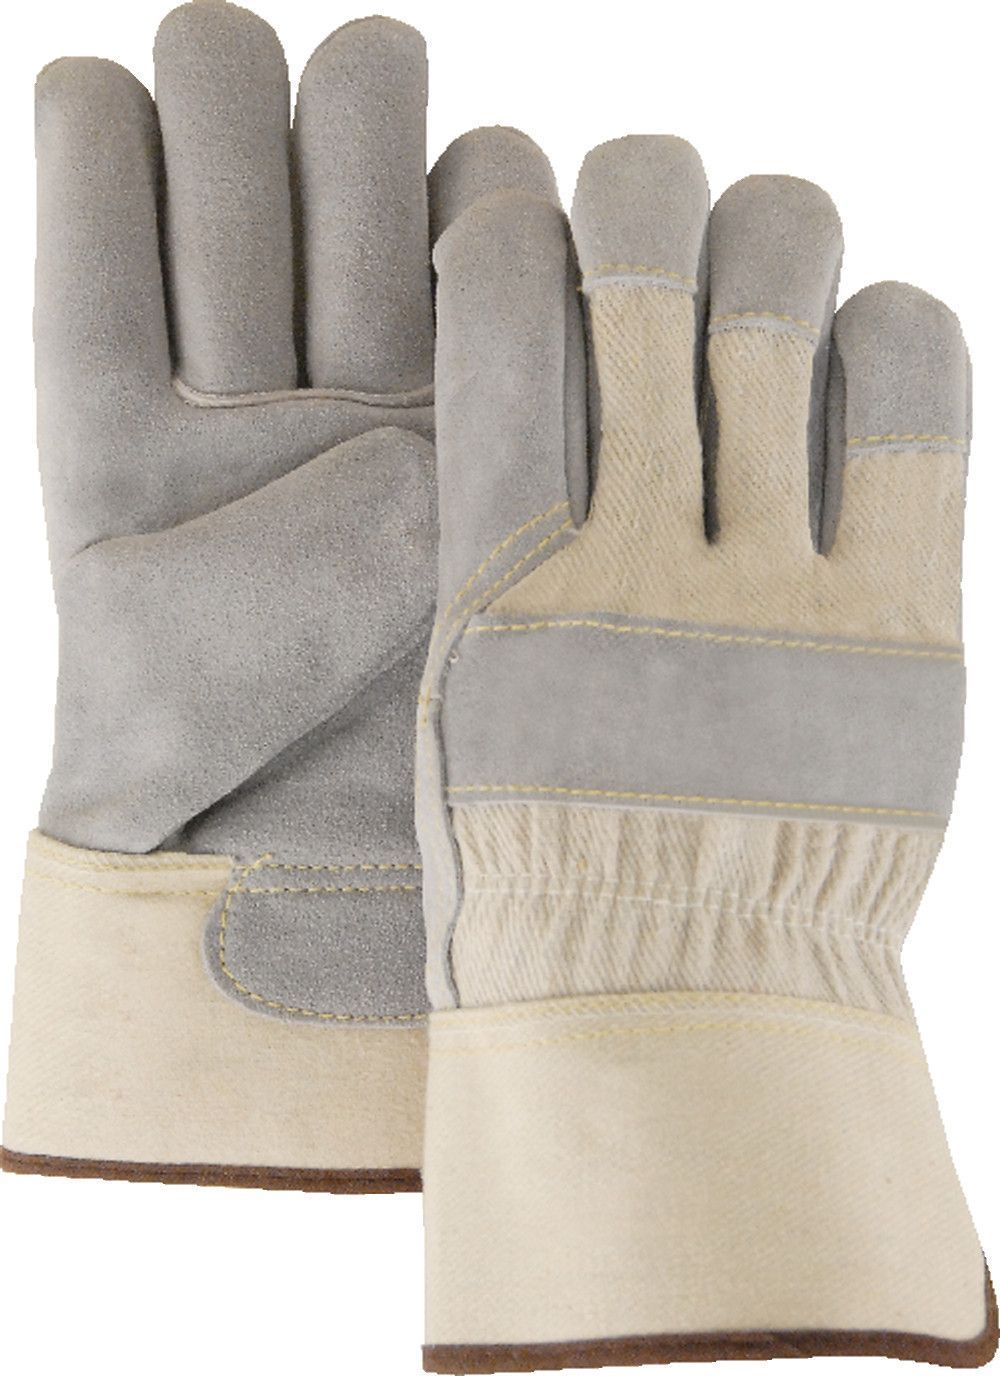 Leather palm work gloves wholesale - Leather Majestic 1800 Split Cowhide Leather Palm Work Gloves